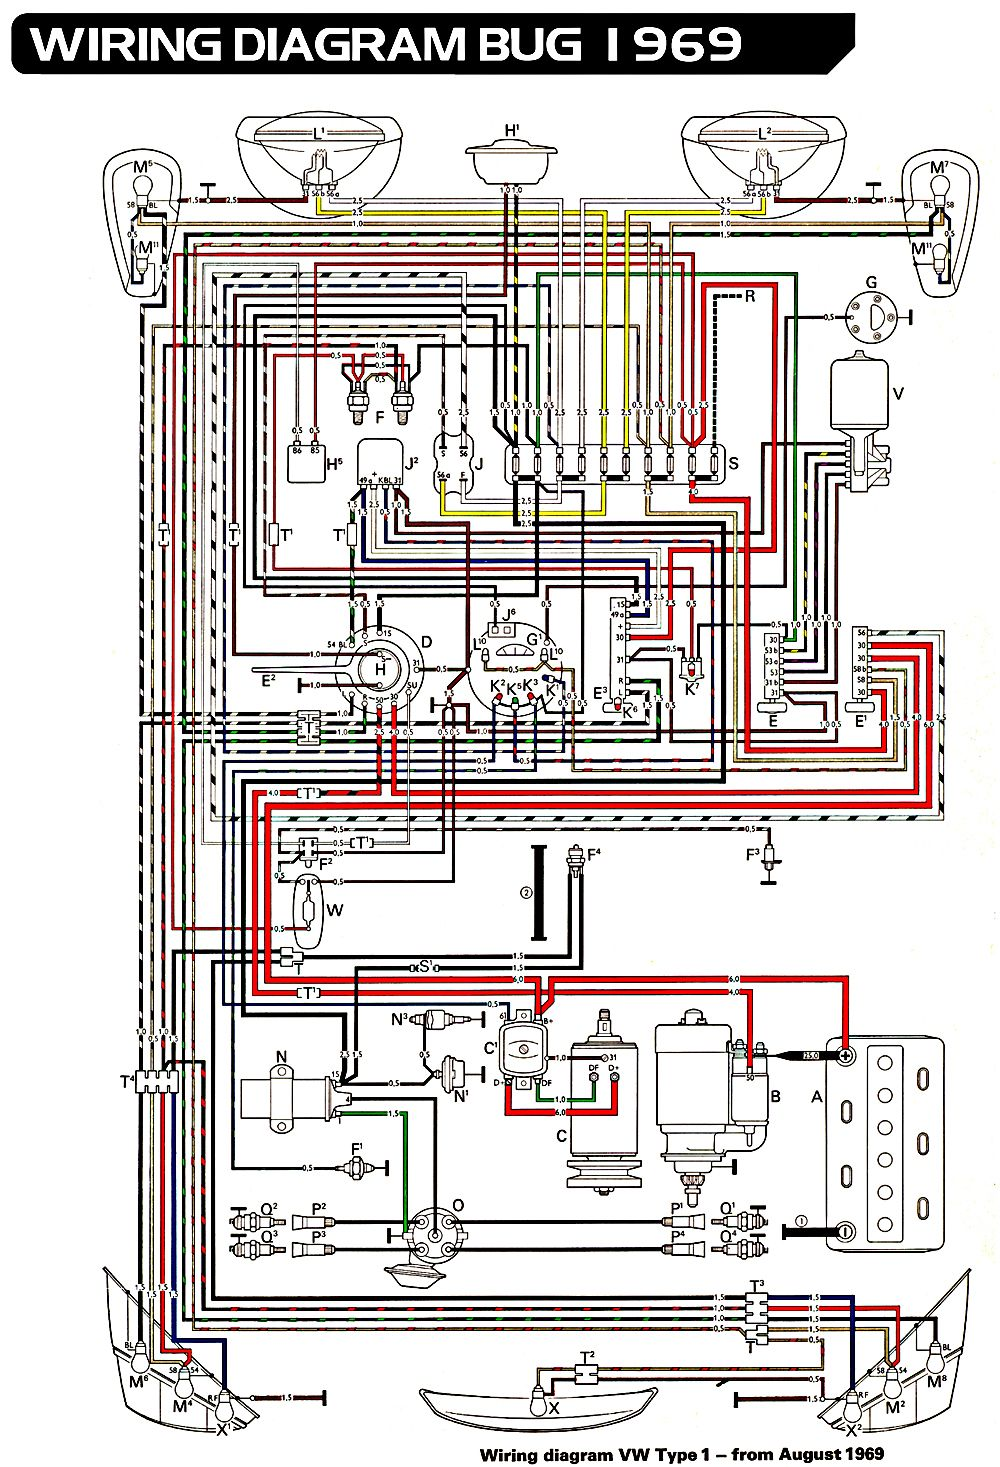 CAB 1968 Vw Beetle Fuse Box Diagram | Wiring Resources Karmann Ghia Wiring Diagram on eurovan wiring diagram, type 181 wiring diagram, volvo wiring diagram, audi wiring diagram, van wiring diagram, mitsubishi wiring diagram, corvette wiring diagram, dodge wiring diagram, type 3 wiring diagram, bug wiring diagram, chrysler wiring diagram, vw wiring diagram, chevrolet wiring diagram, jeep wiring diagram, toyota wiring diagram, acura wiring diagram, mgb wiring diagram, lincoln wiring diagram, mustang wiring diagram, austin healey wiring diagram,